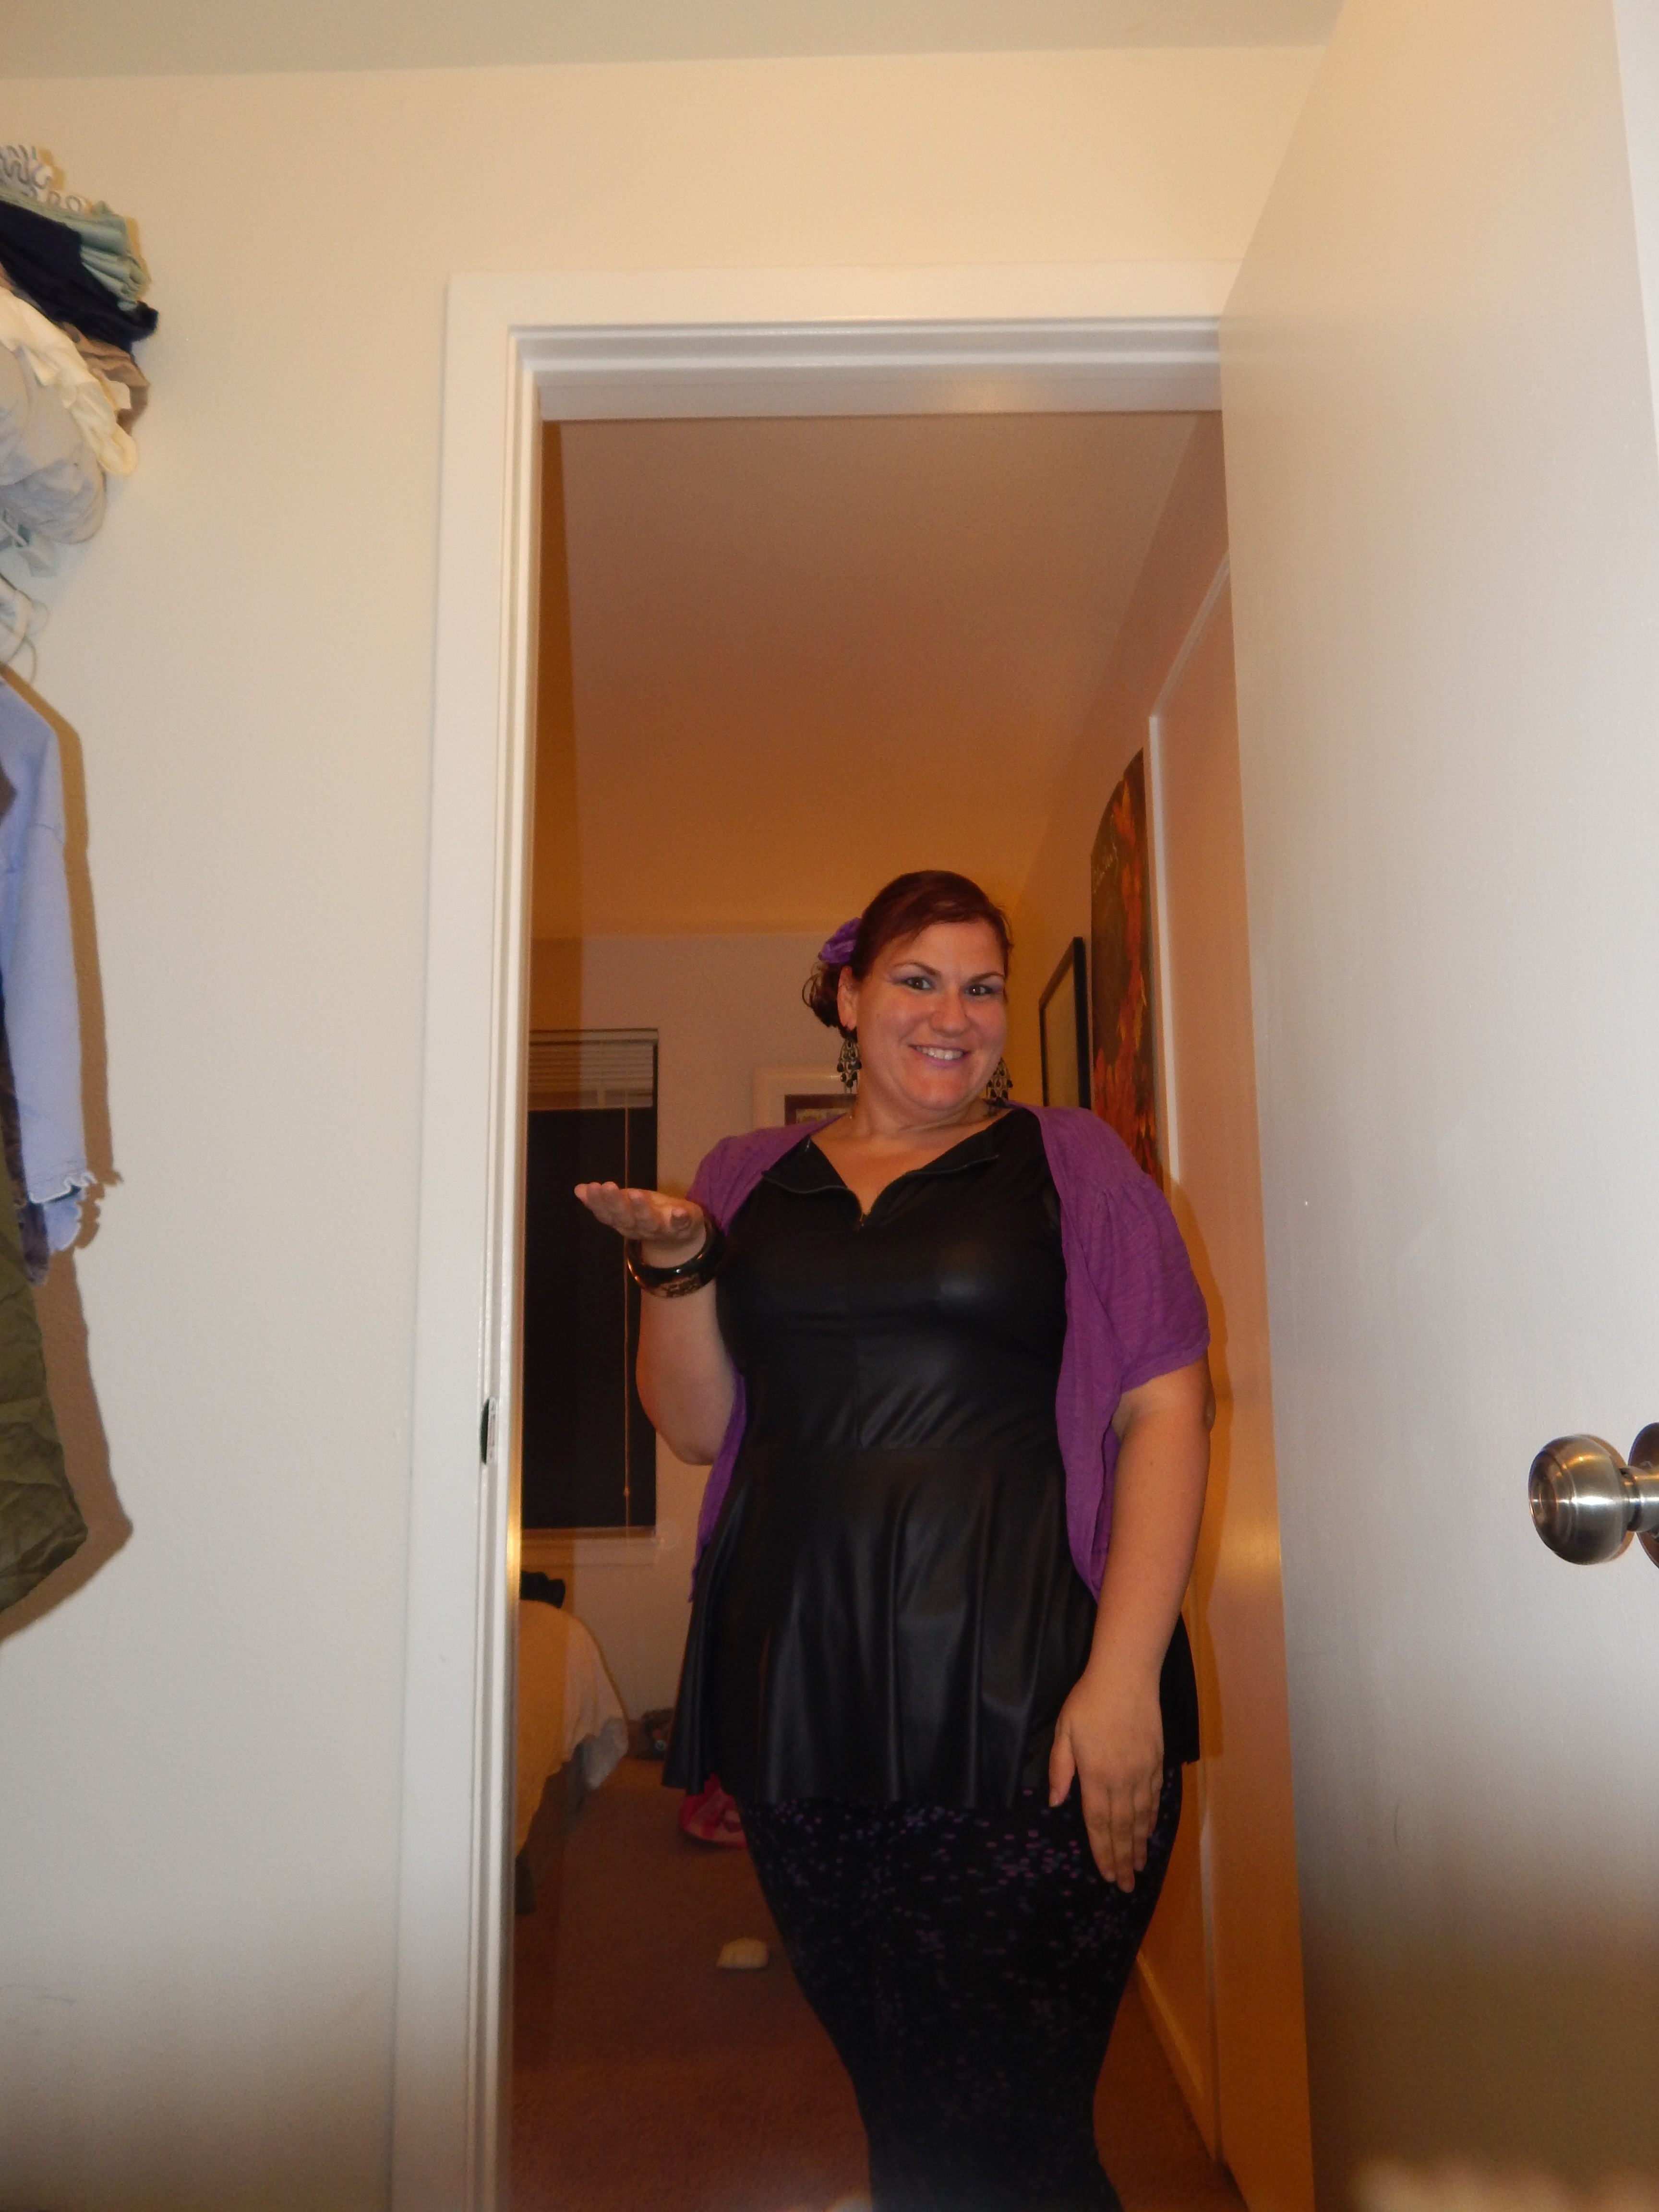 Heading out to Plum Bistro for my first dinner in Seattle.